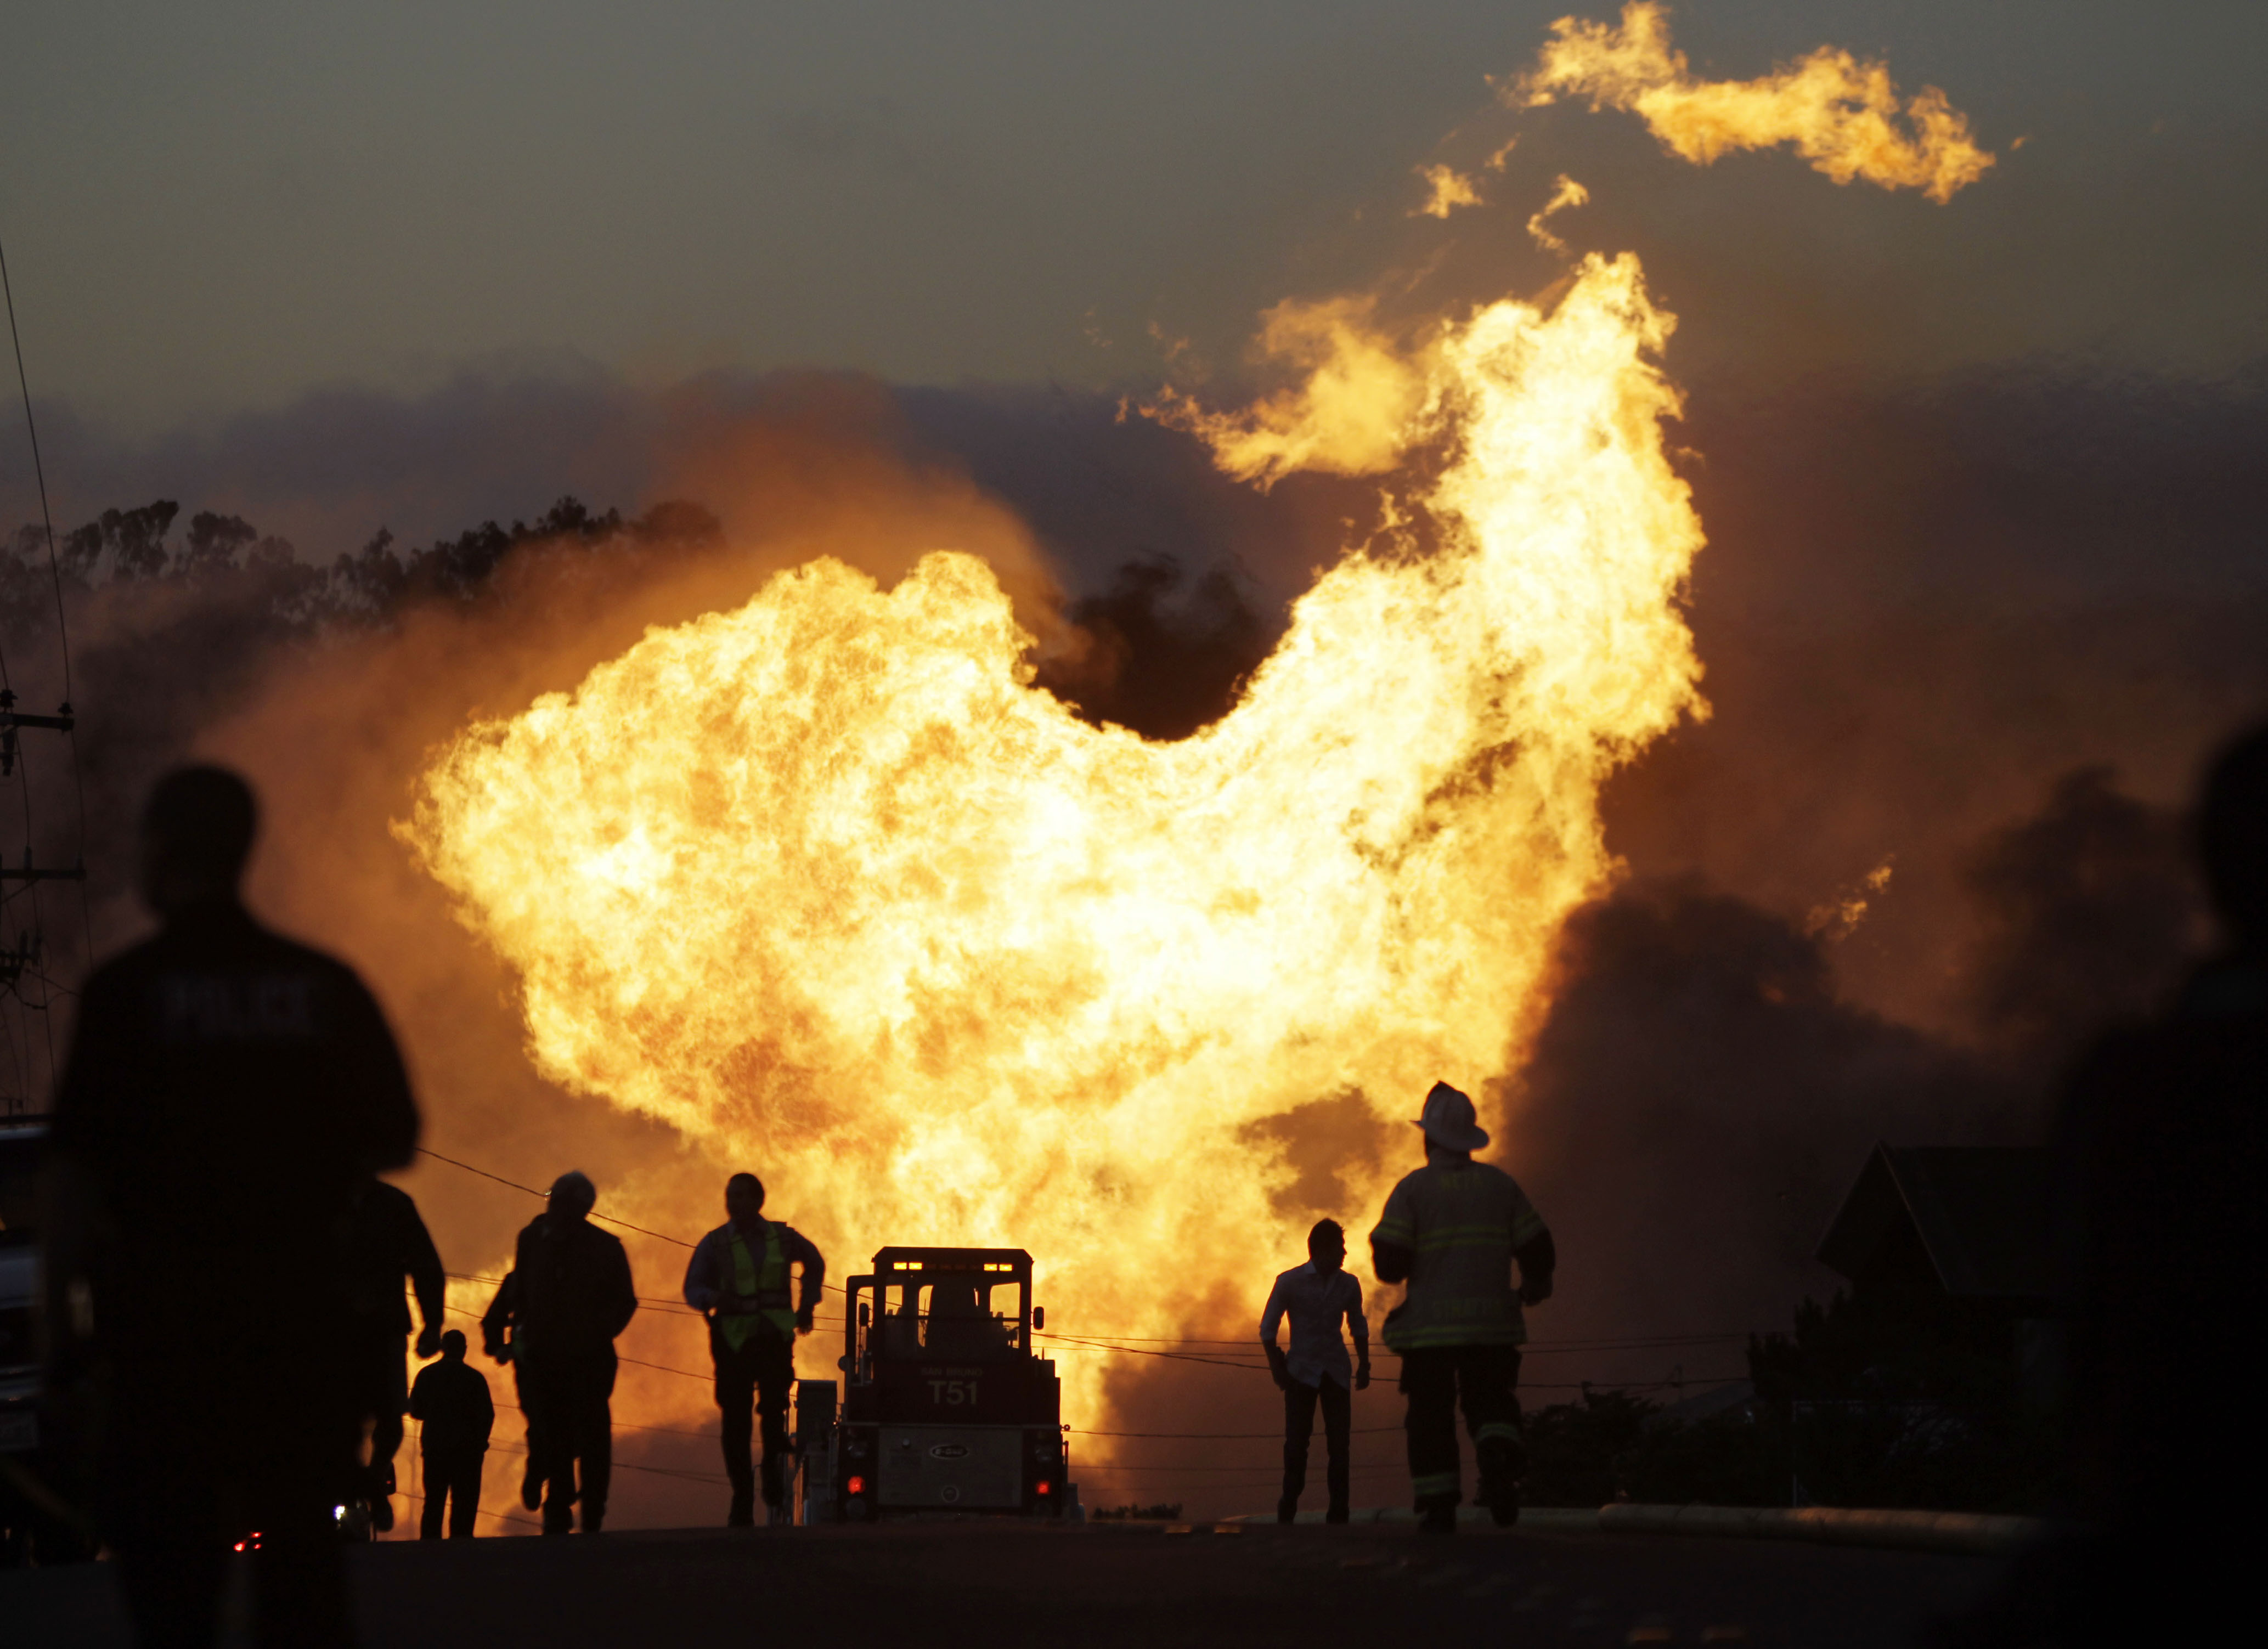 A massive fire roars through a mostly residential neighborhood in San Bruno, California on Thursday.